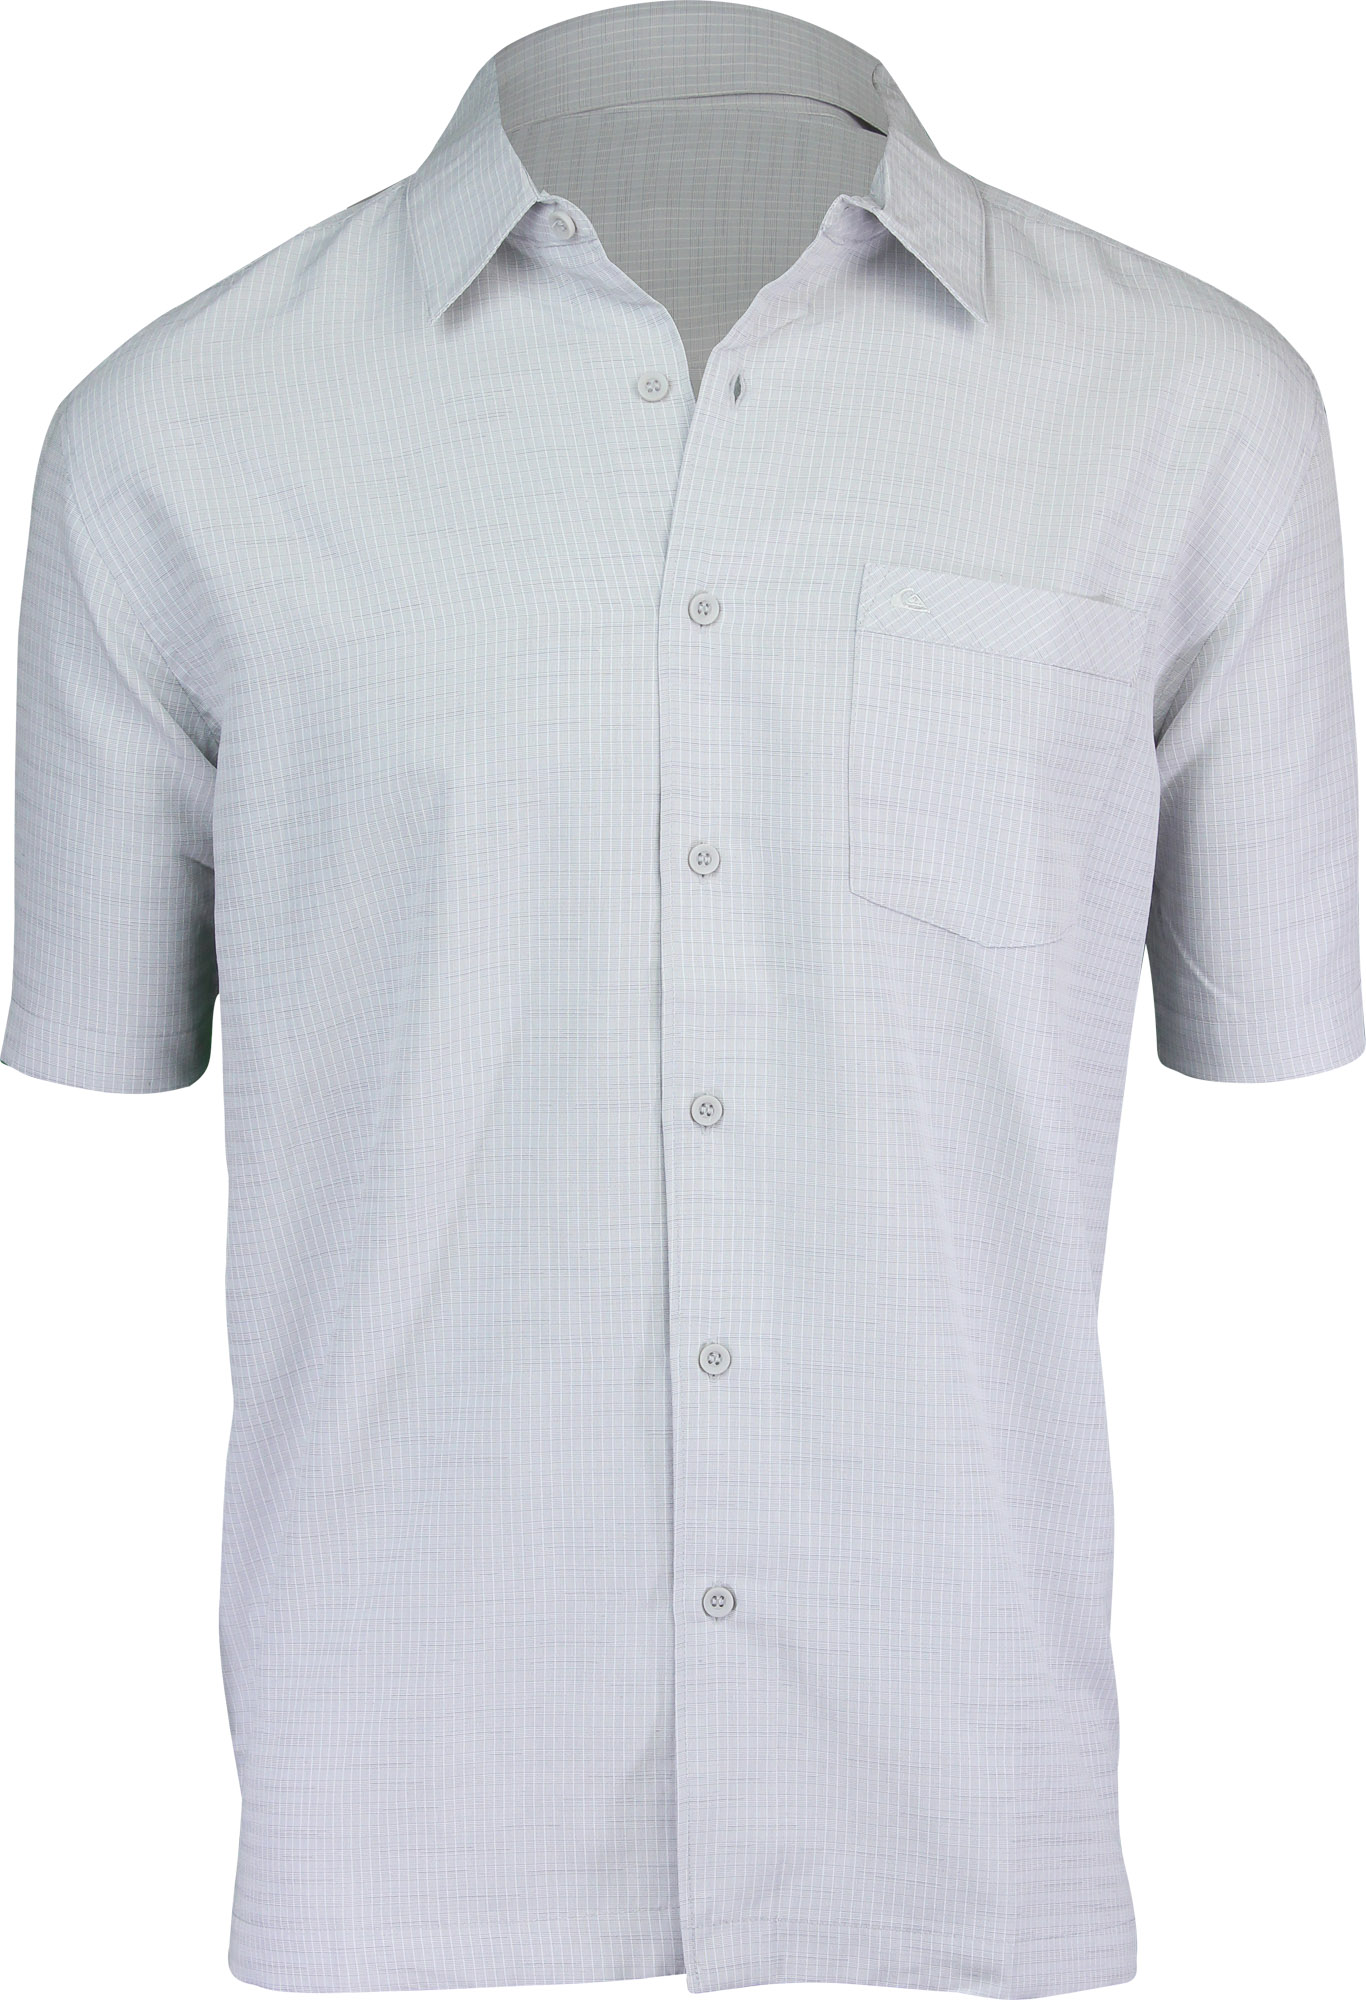 d0613a48 Quiksilver Mens Waterman Collection Centinela 4 SS Shirt Freizeithemden &  Shirts Drizzle Gray Herrenmode